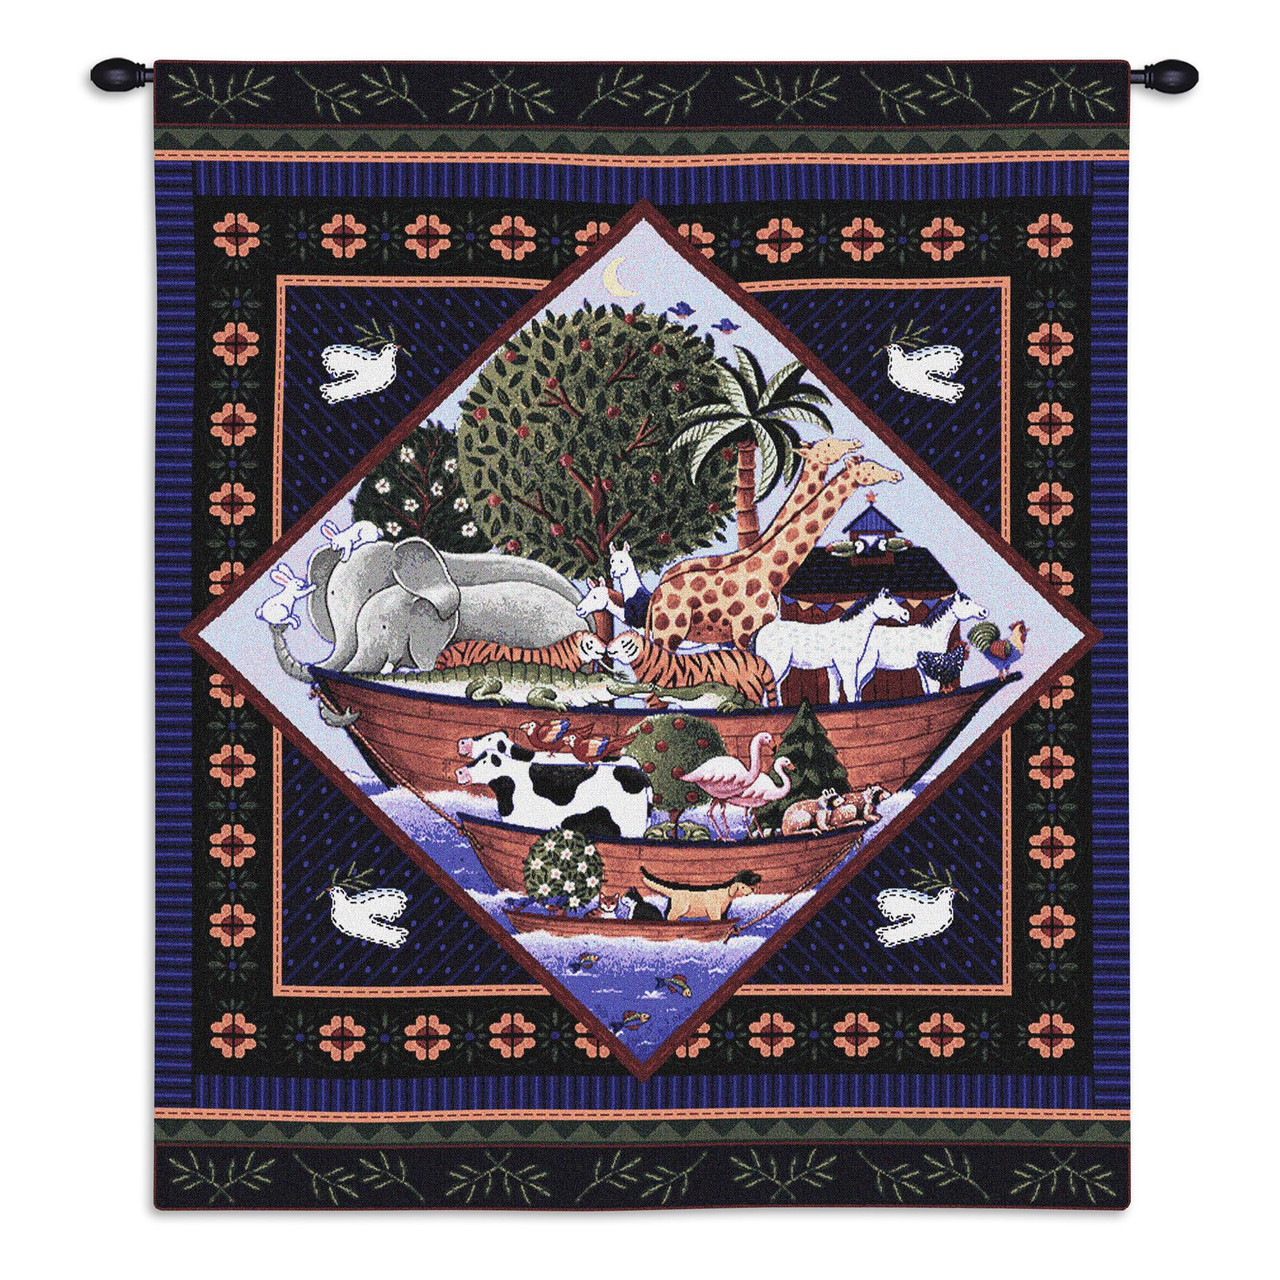 Noah'S Ark By Coco Dawley | Woven Tapestry Wall Art Hanging | Child Art  Children'S Characters And Scenes Noah'S Ark Biblical Story | 100% Cotton USA